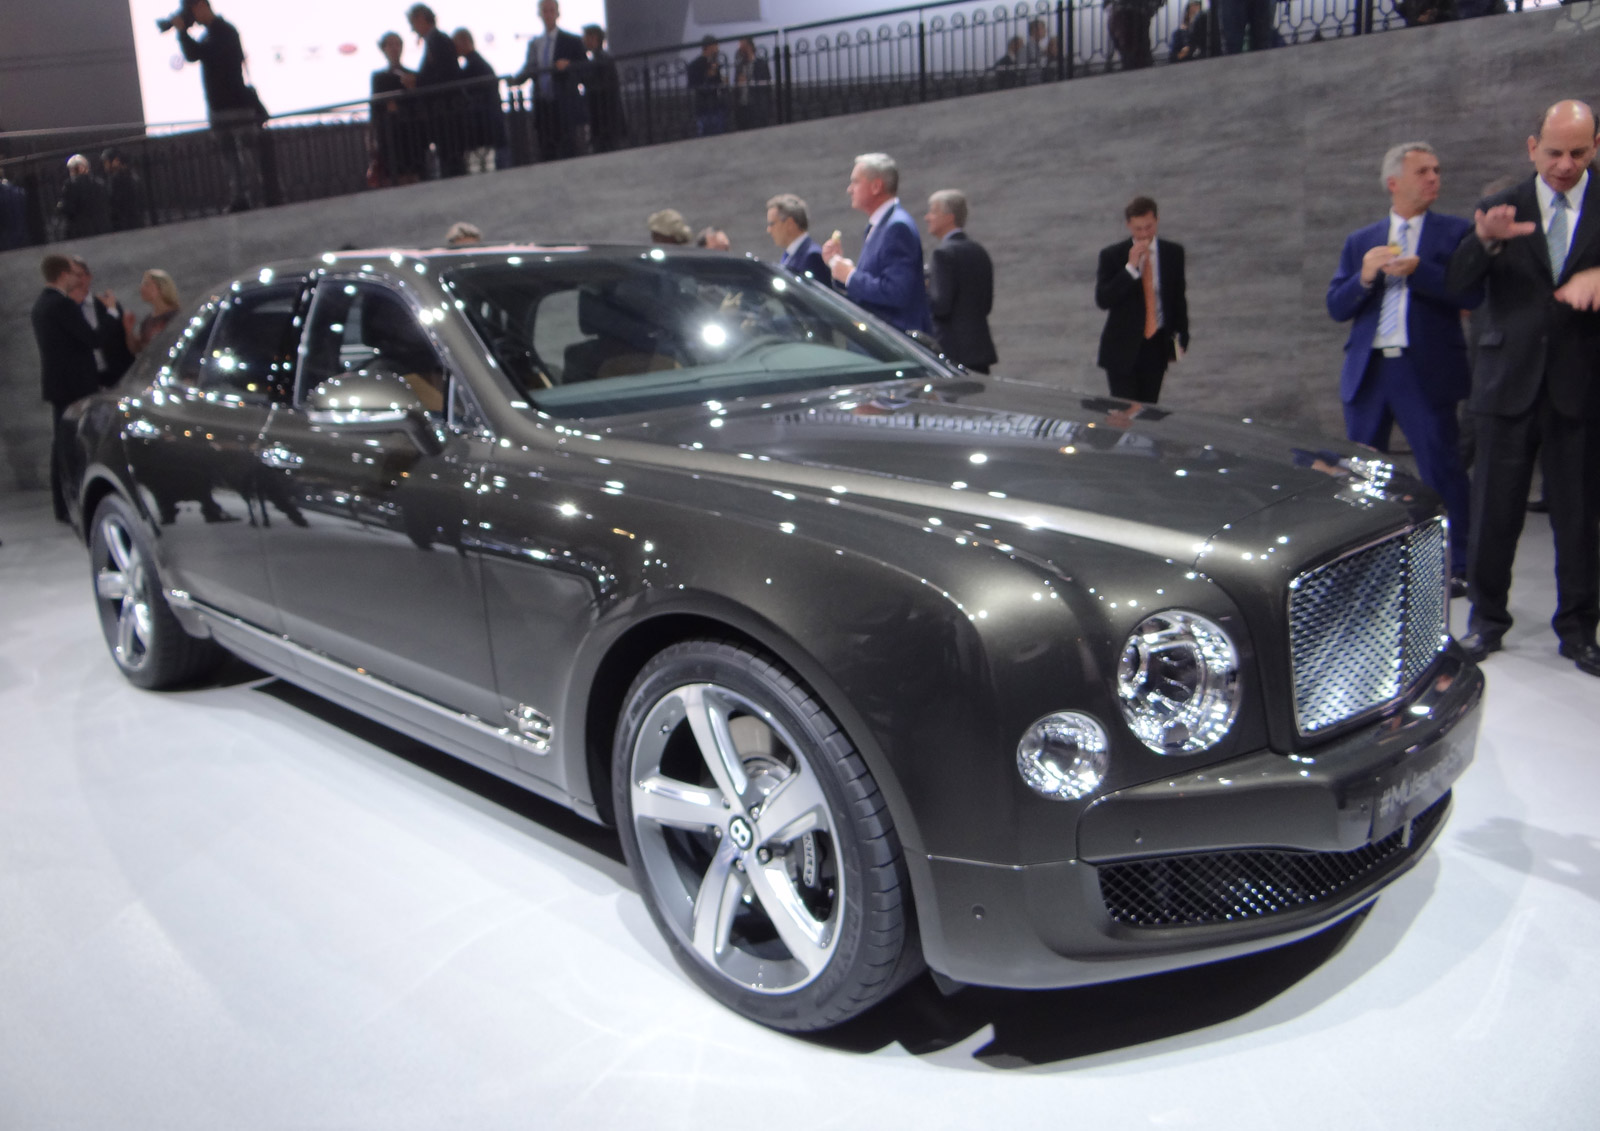 2015 bentley mulsanne speed revealed with 530 hp and 811 lb ft of 2015 bentley mulsanne speed revealed with 530 hp and 811 lb ft of torque paris auto show live photos vanachro Images